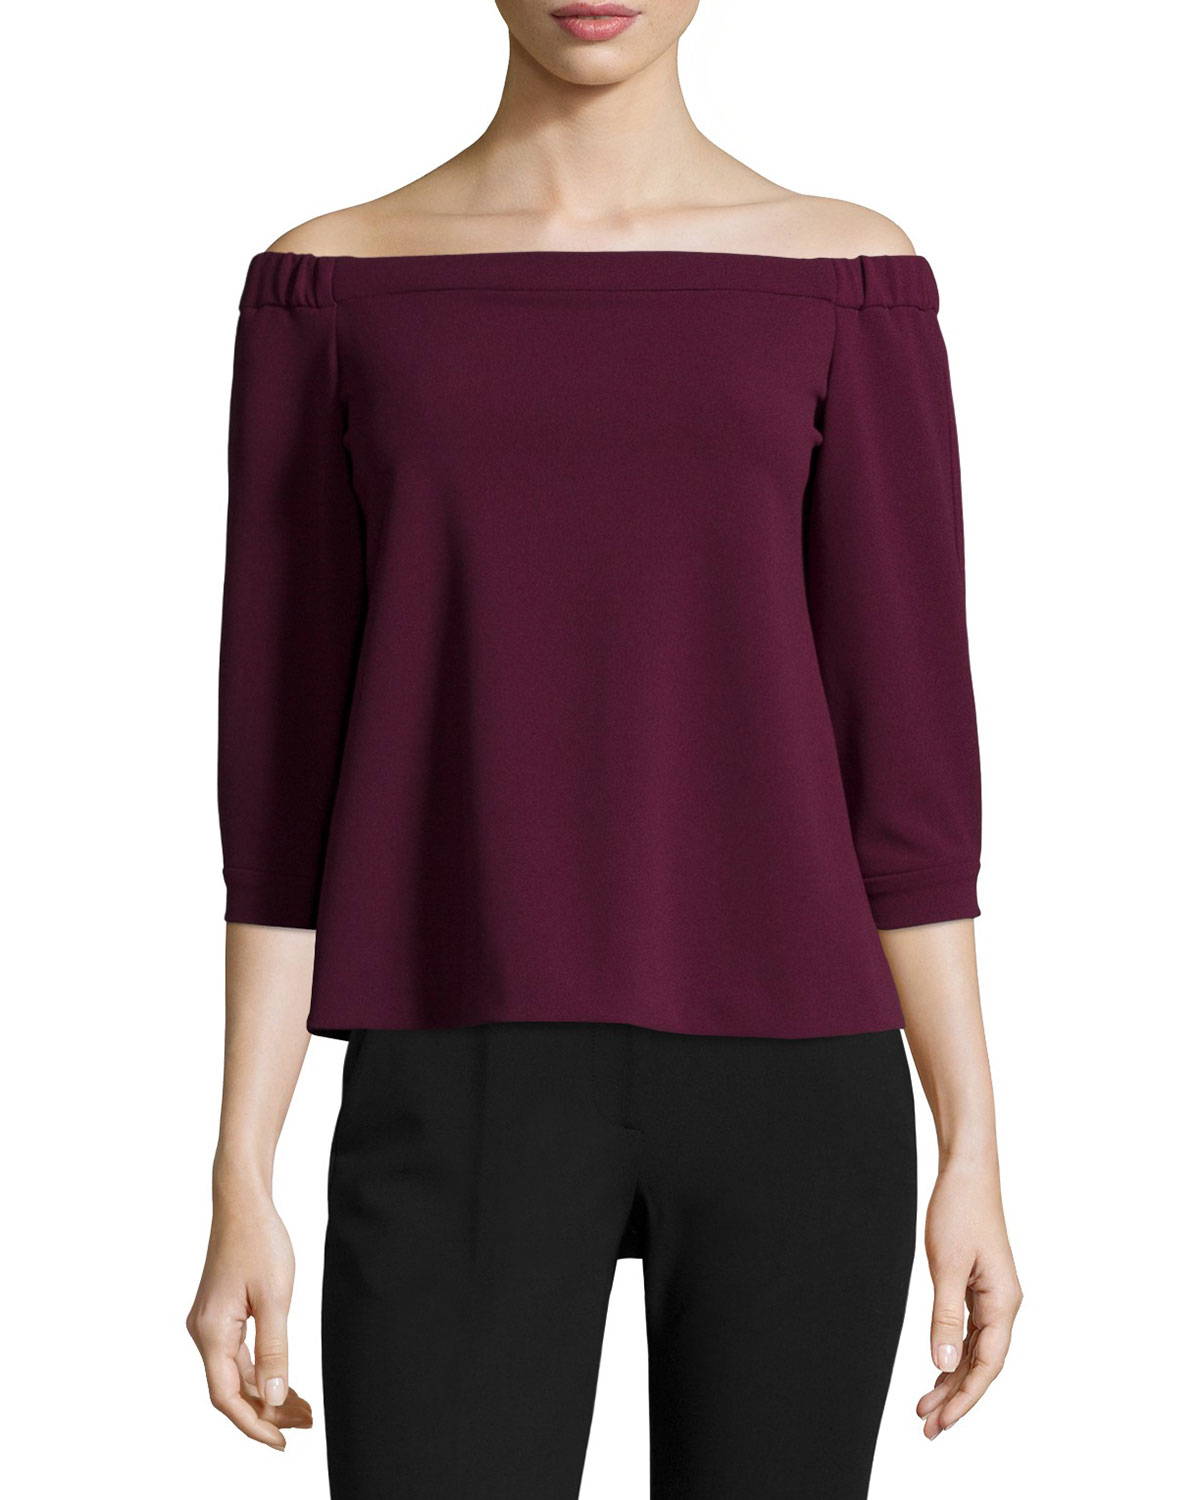 aa469e7a16af3 Lyst - Tibi 3 4-sleeve Off-the-shoulder Top in Purple